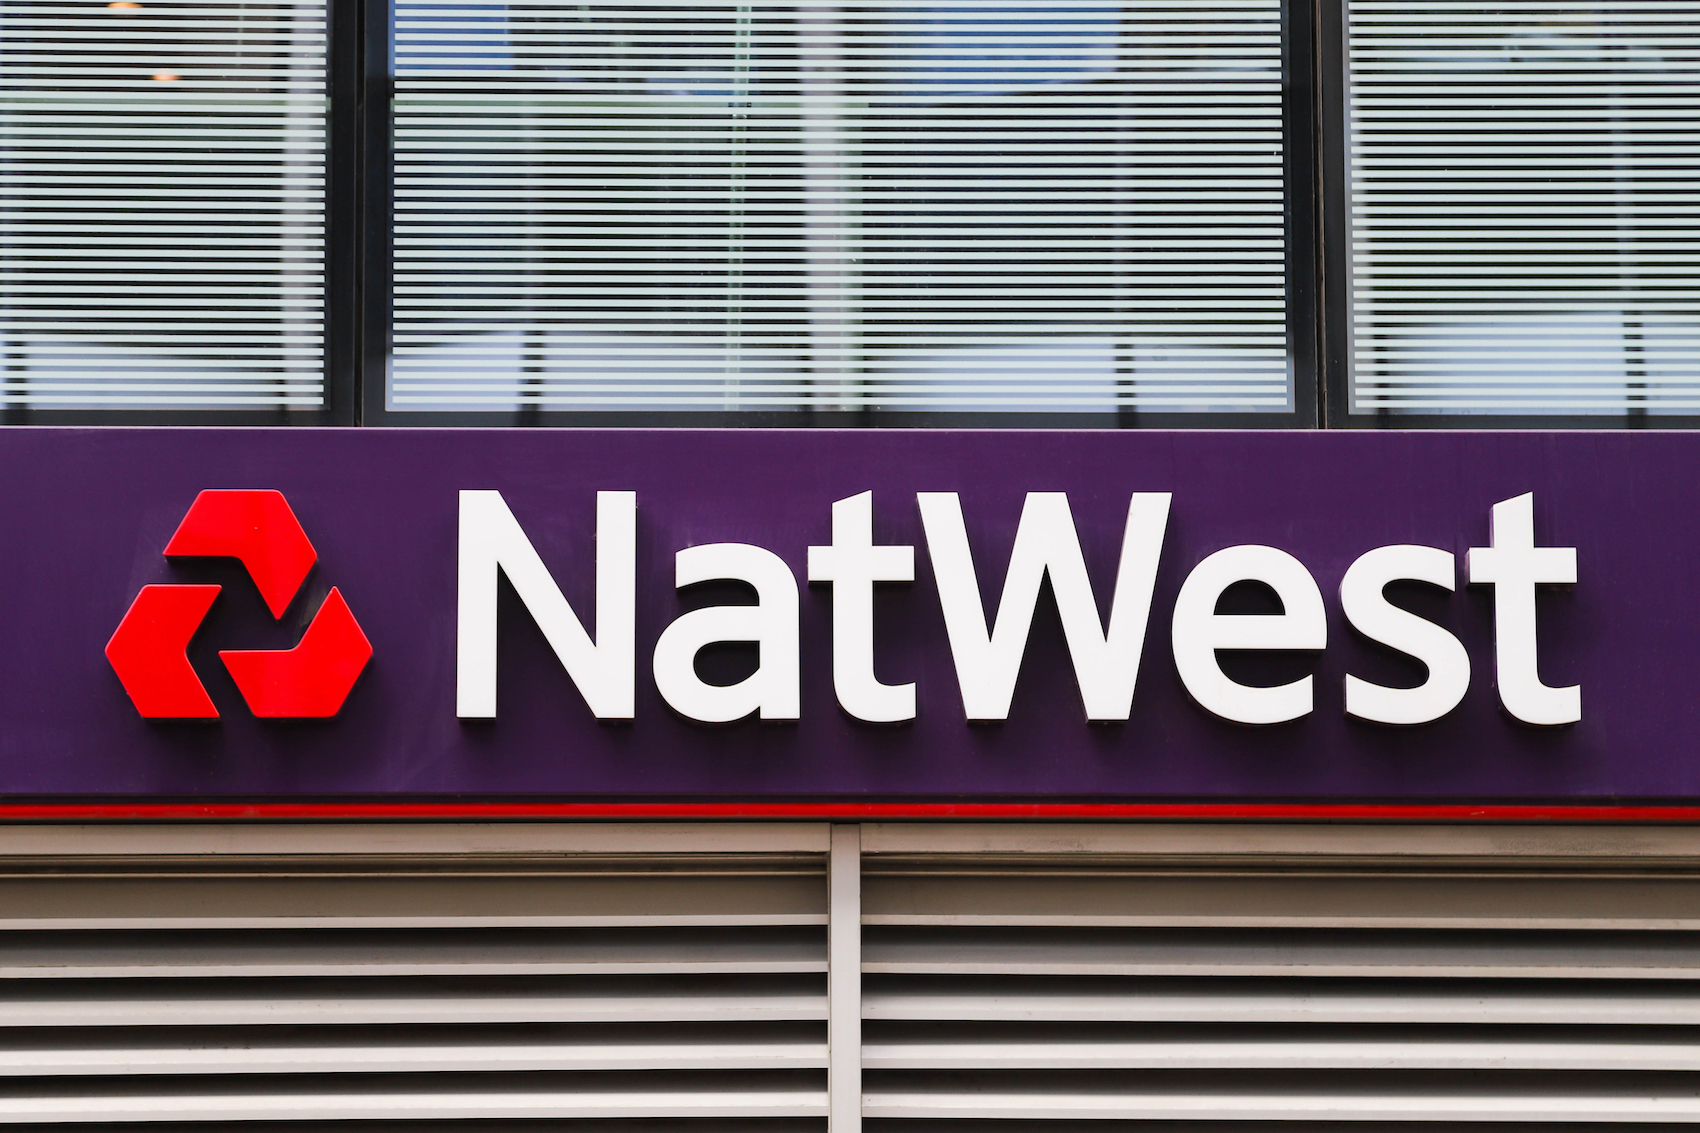 natwest international to close two branches  bailiwick